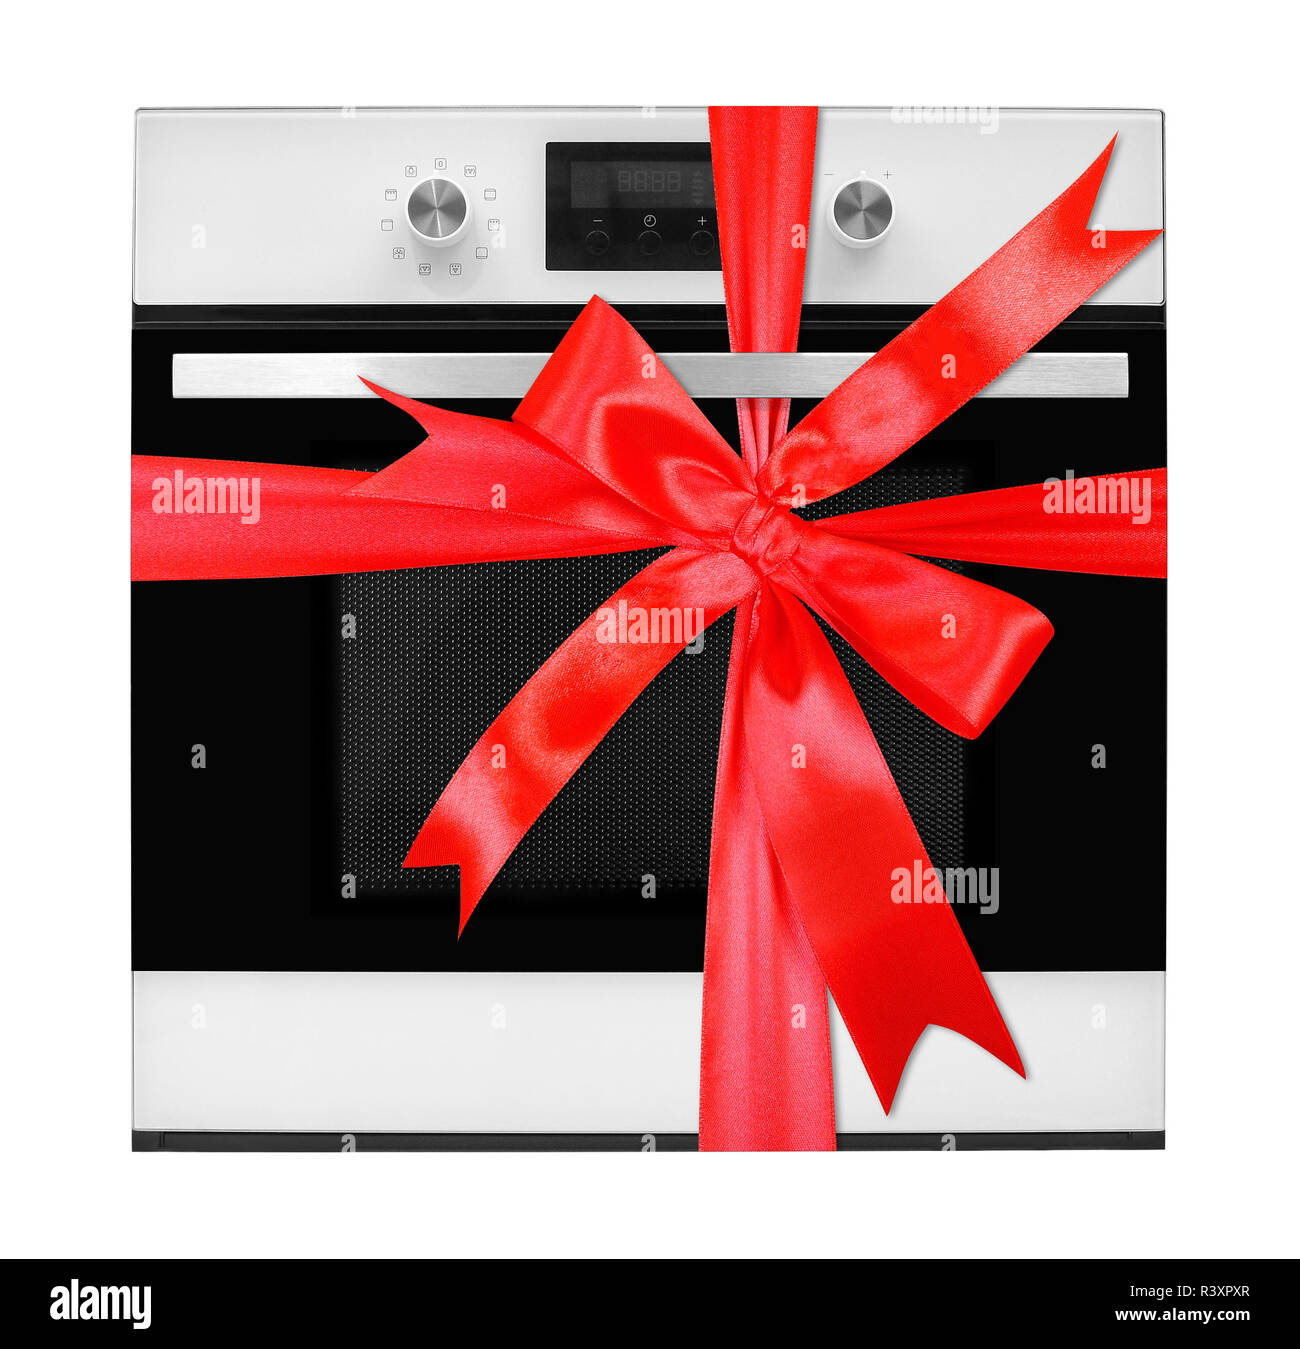 The electric oven gift tied red bow on a white background. It is isolated, the worker of paths is present. Stock Photo